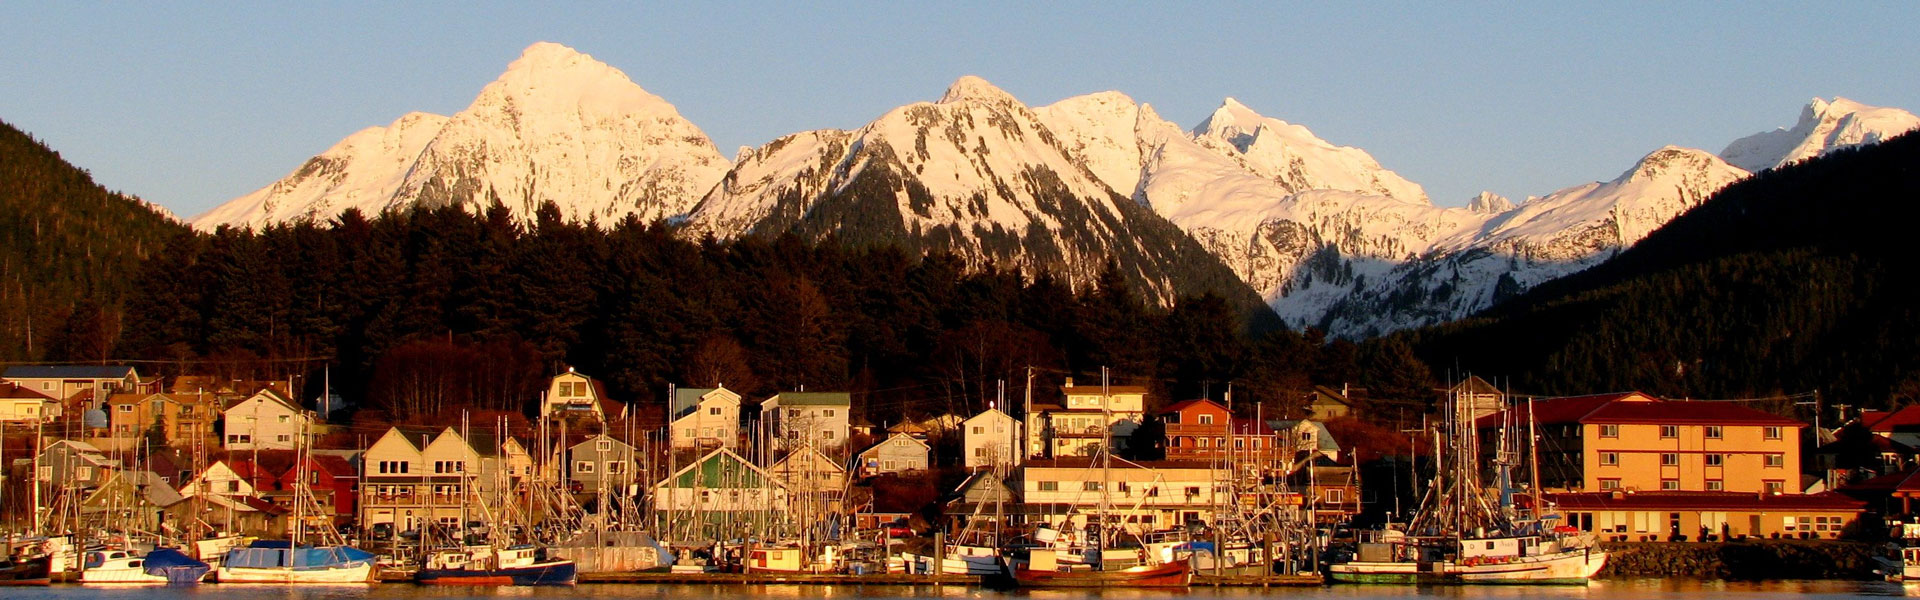 Sitka Alaska | Shore Excursions Tours